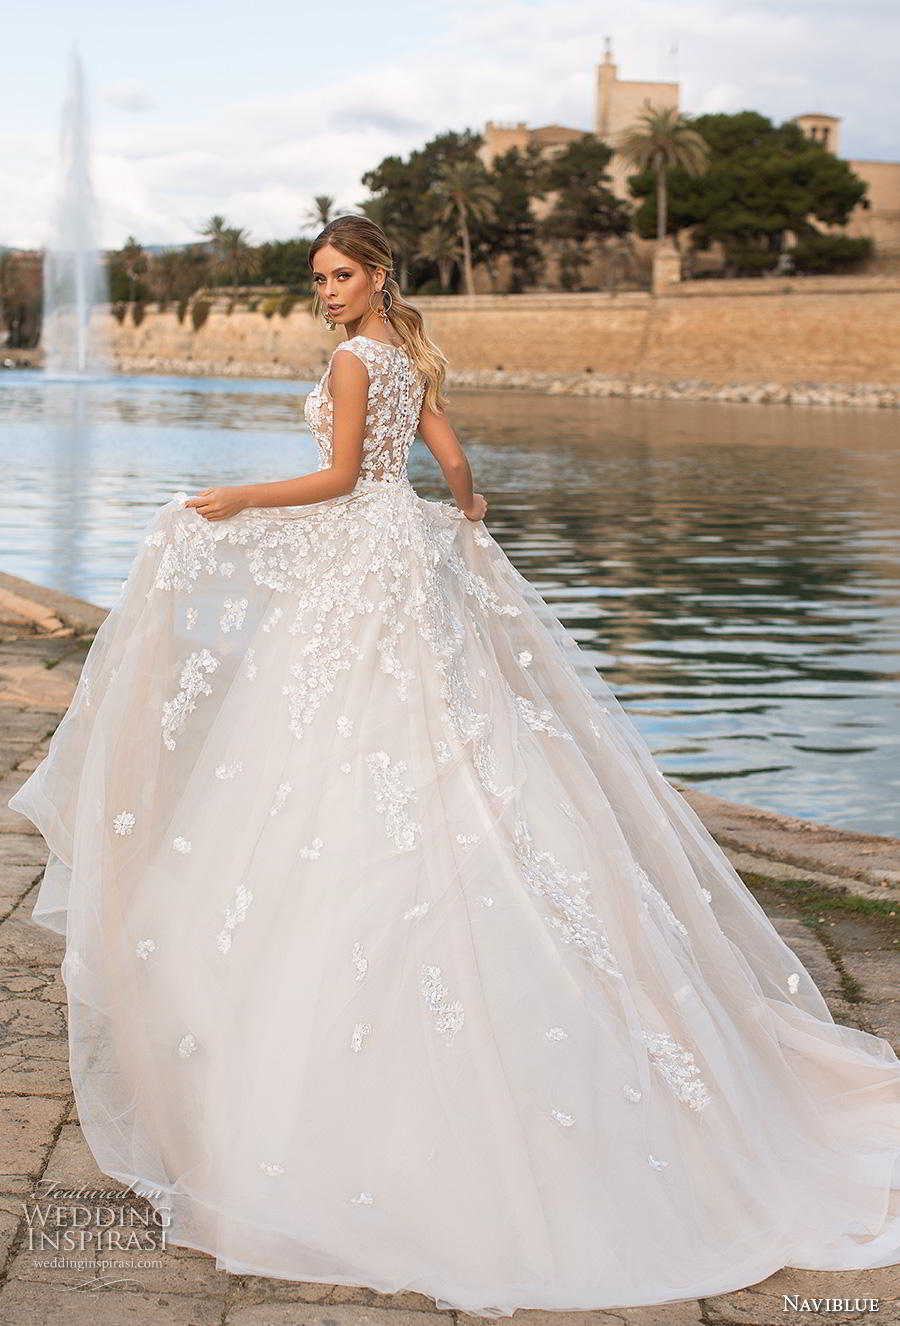 naviblue 2019 bridal sleeveless jewel neckline heavily embellished bodice romantic a  line wedding dress covered lace back chapel train (16) bv